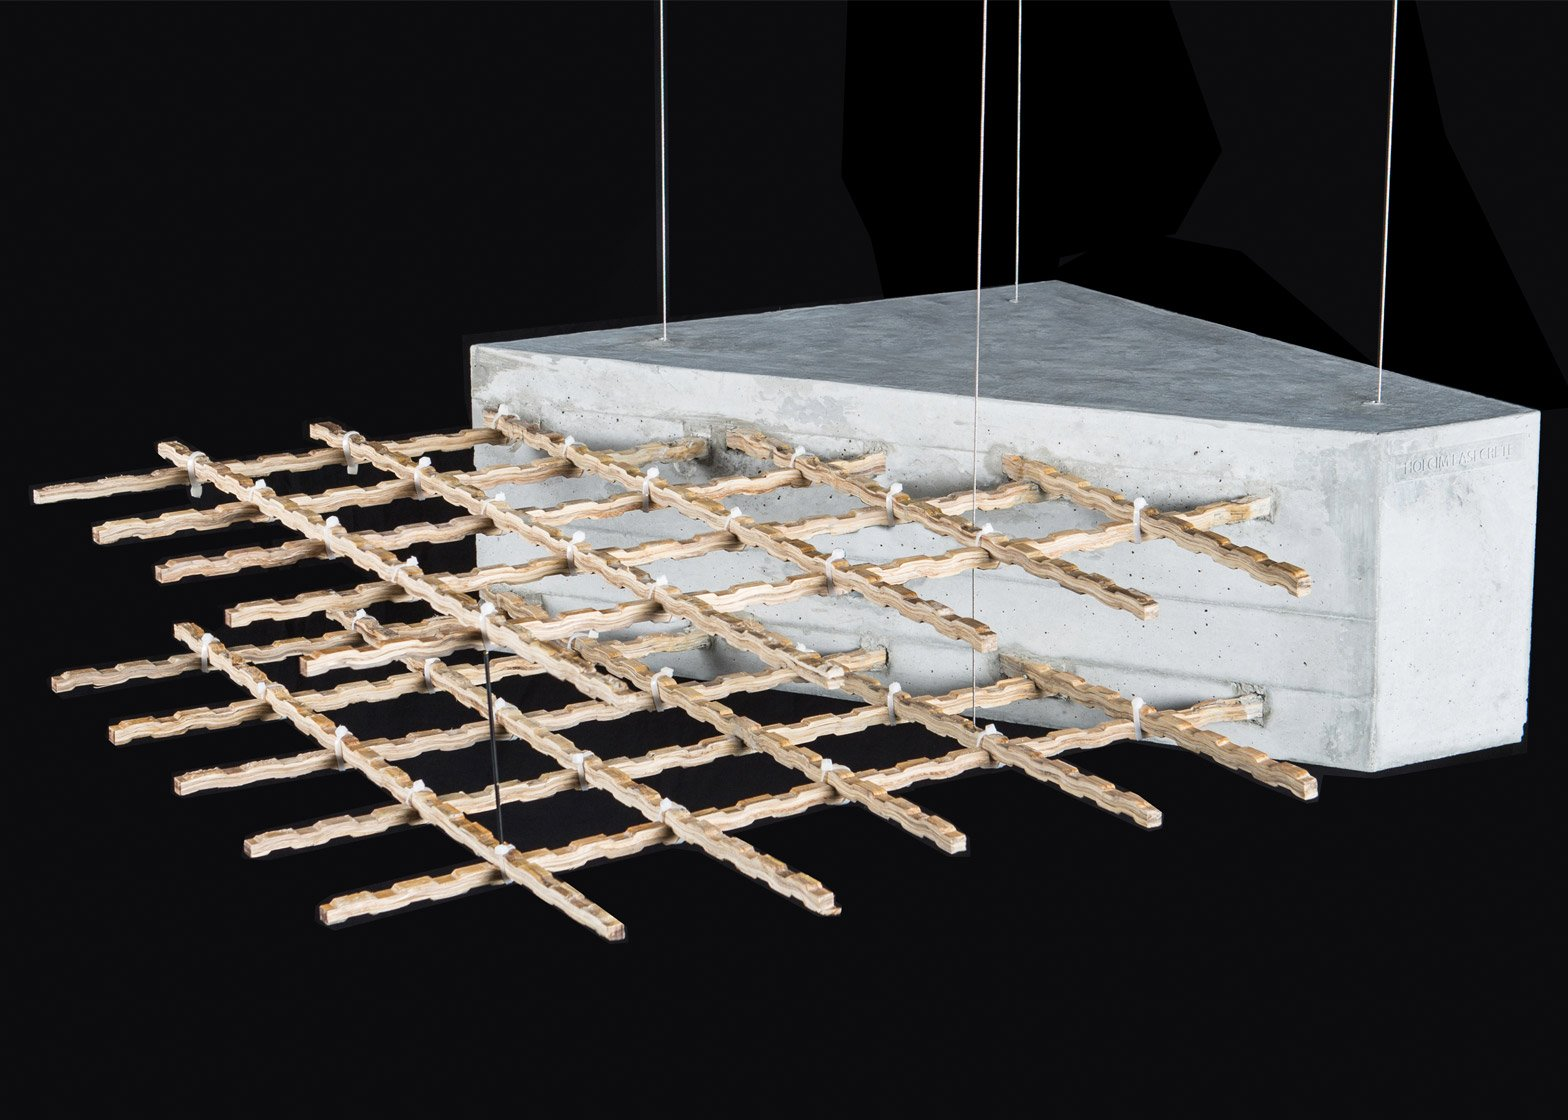 Dirk Hebel on bamboo at World Architecture Festival 2015